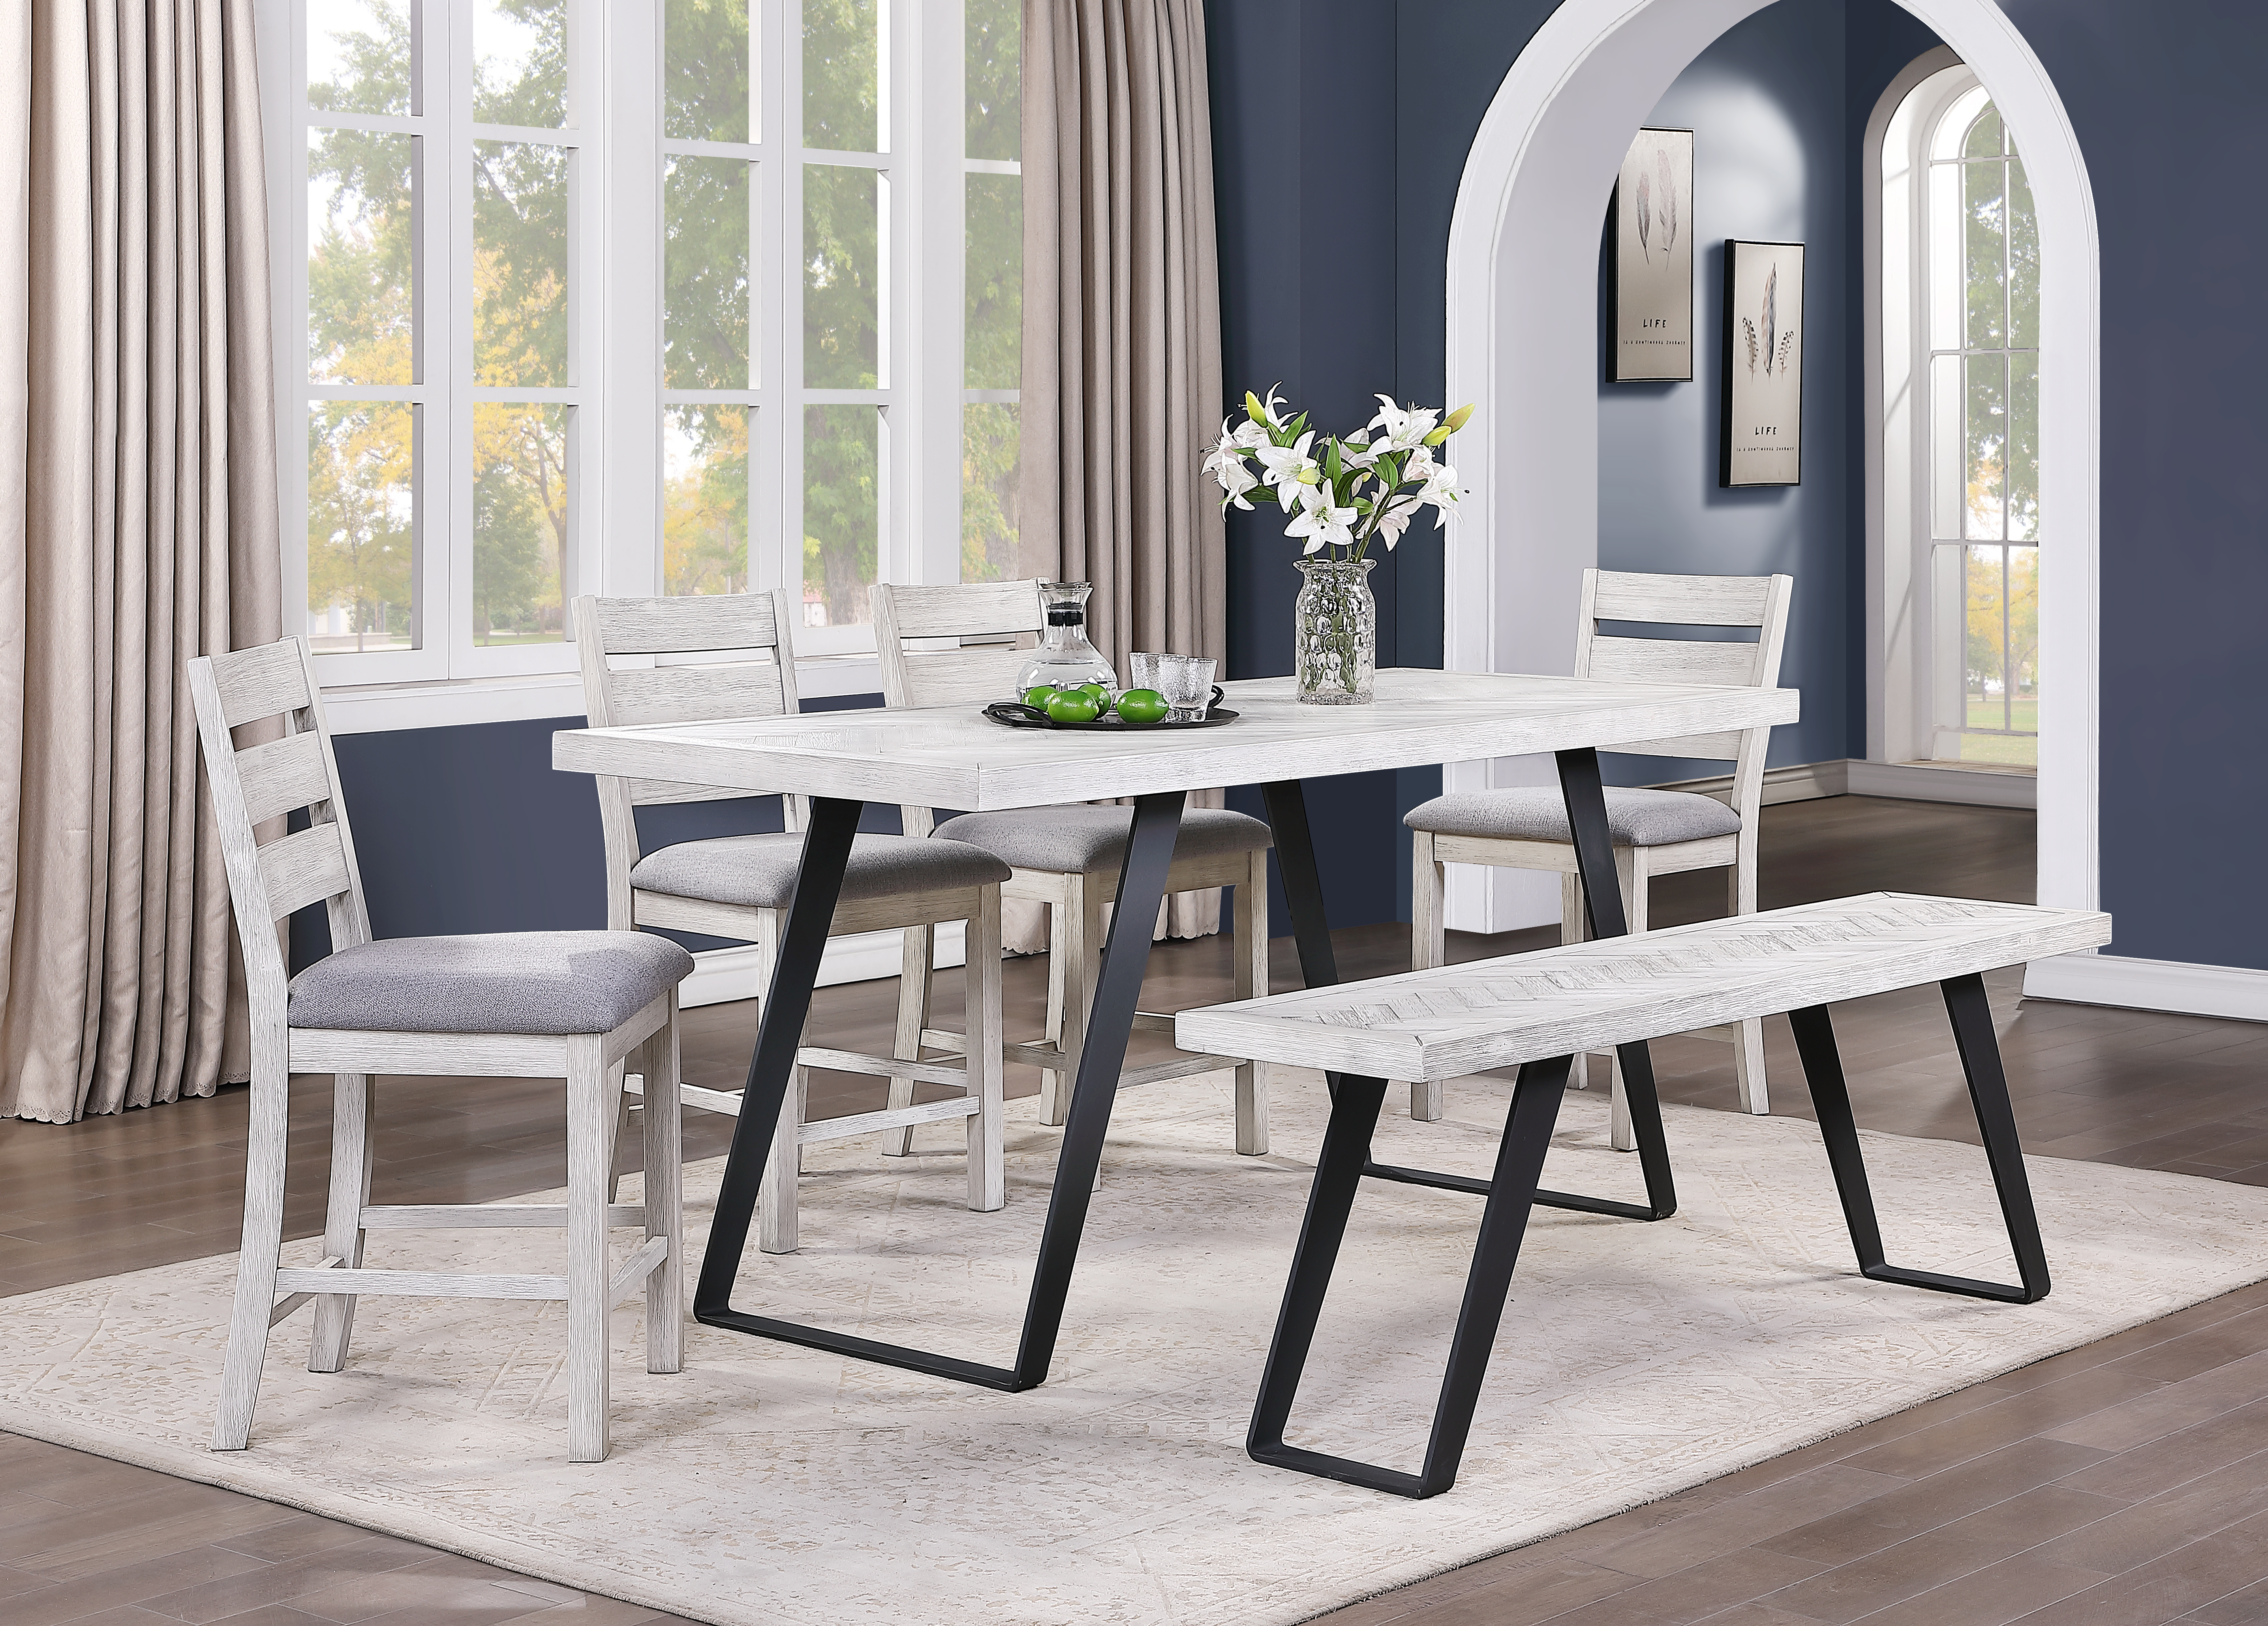 Aspen Court Ii Counter Height Dining Table By Coast To Coast 48199 Deets Furniture